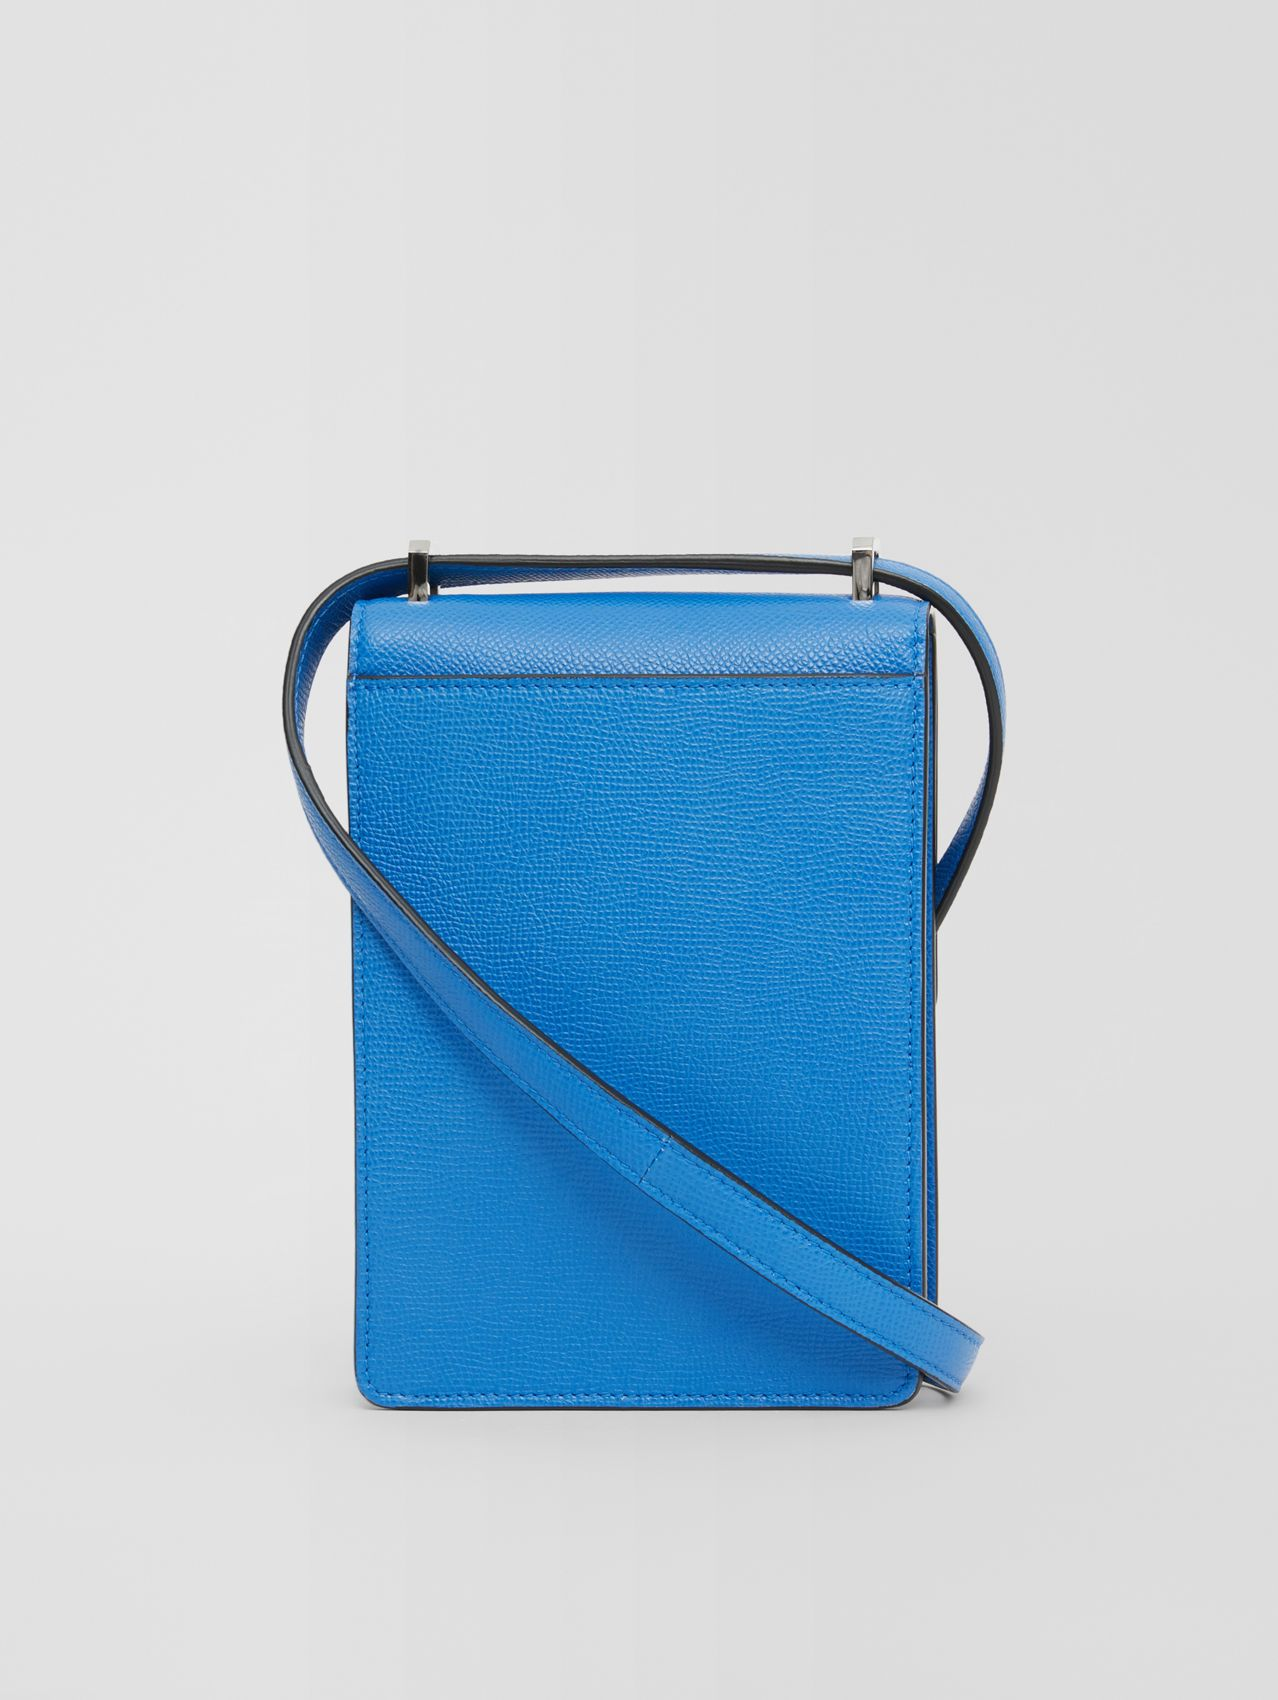 Grainy Leather Robin Bag in True Blue